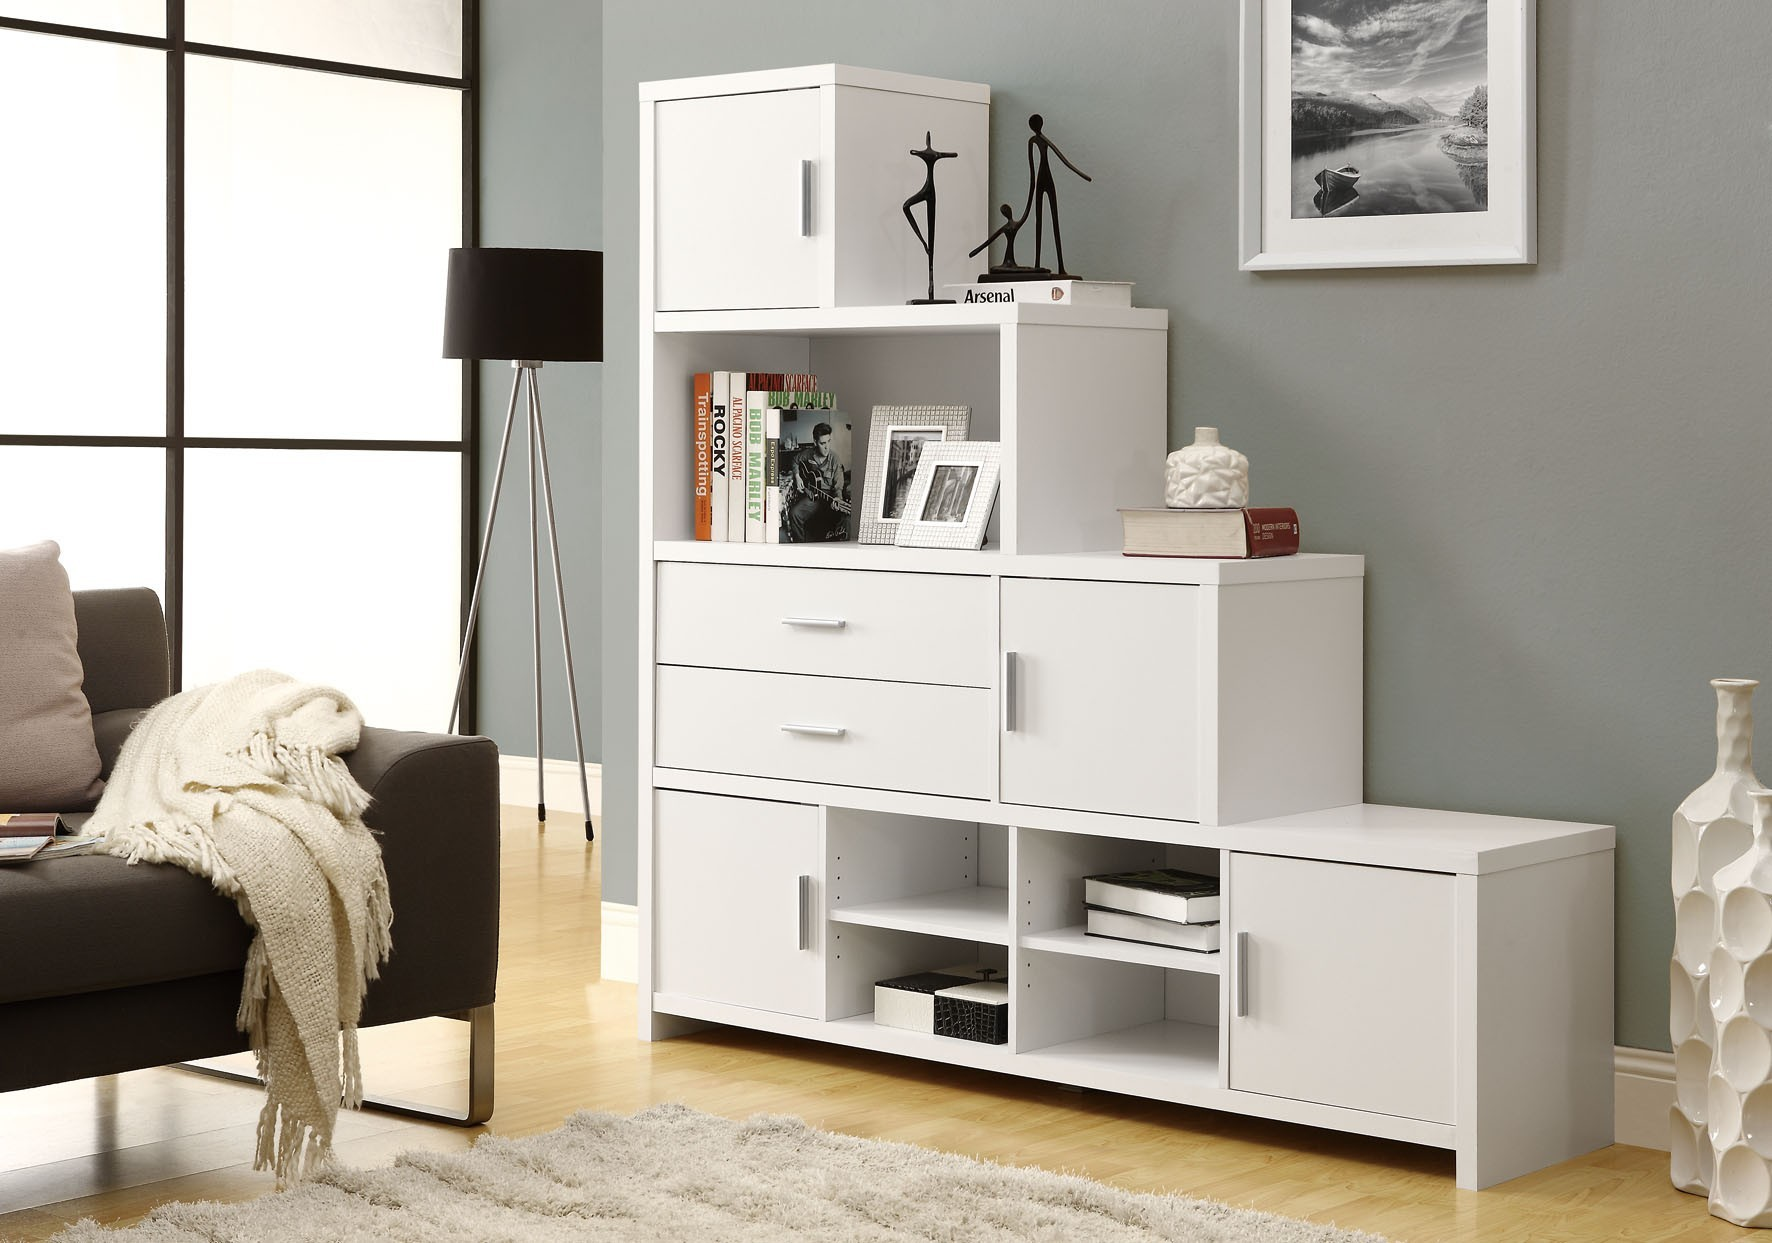 Corner Shelves Furniture Royals Courage When You Place